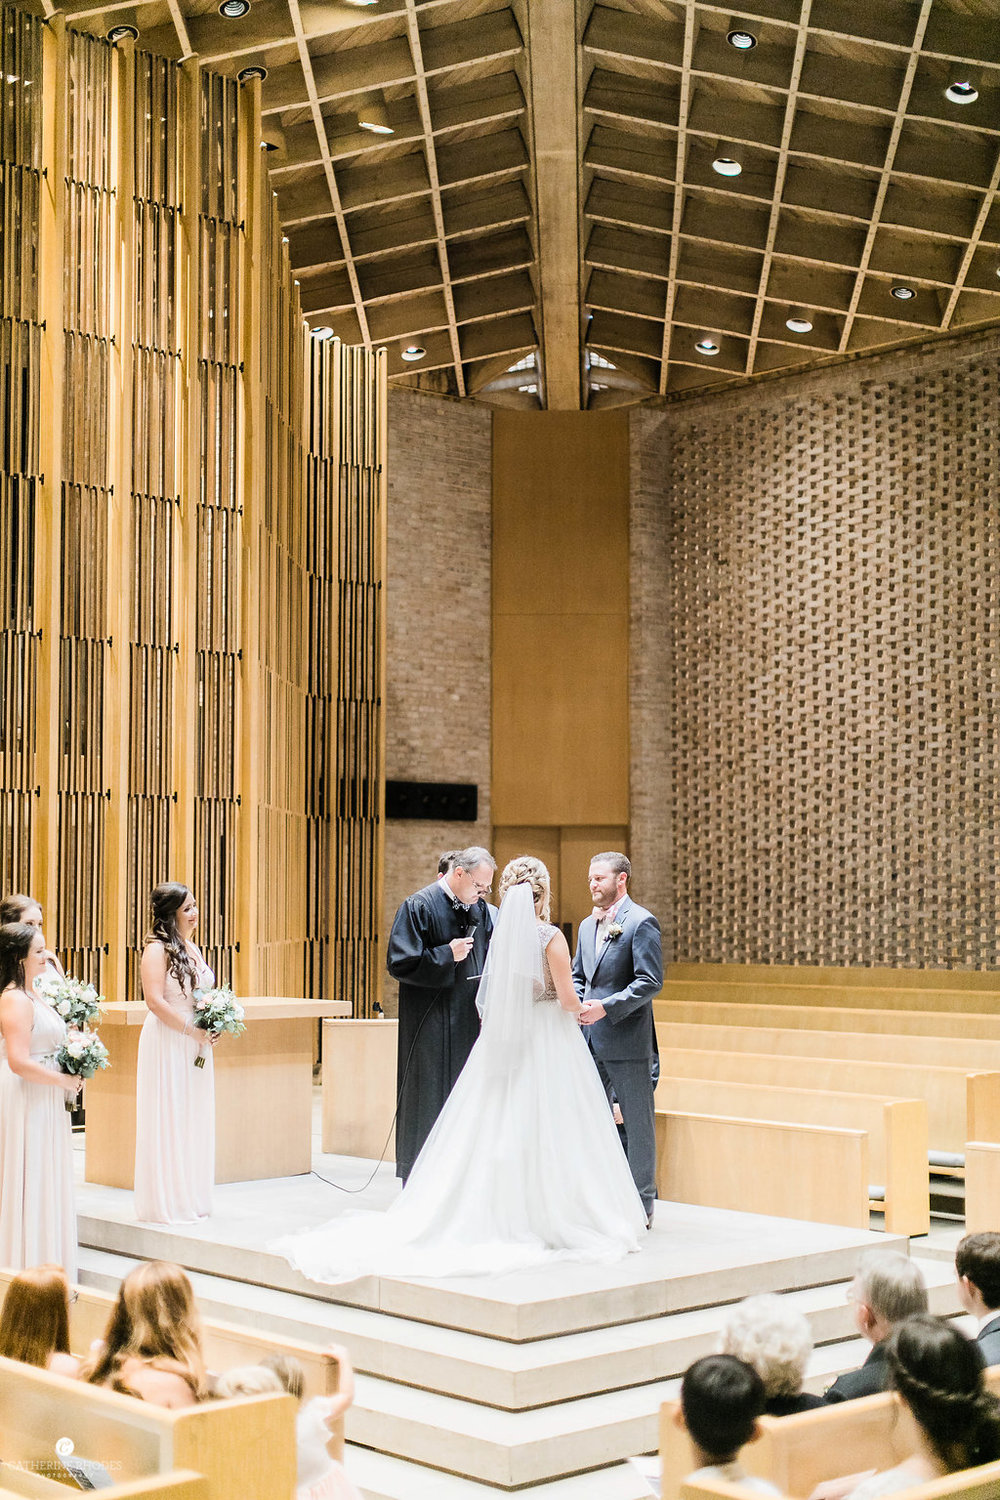 KimballBallroomWedding_Ceremony_KenzieDrew_Portraits_Catherinerhodesphotography(133of310)-Edit.jpg